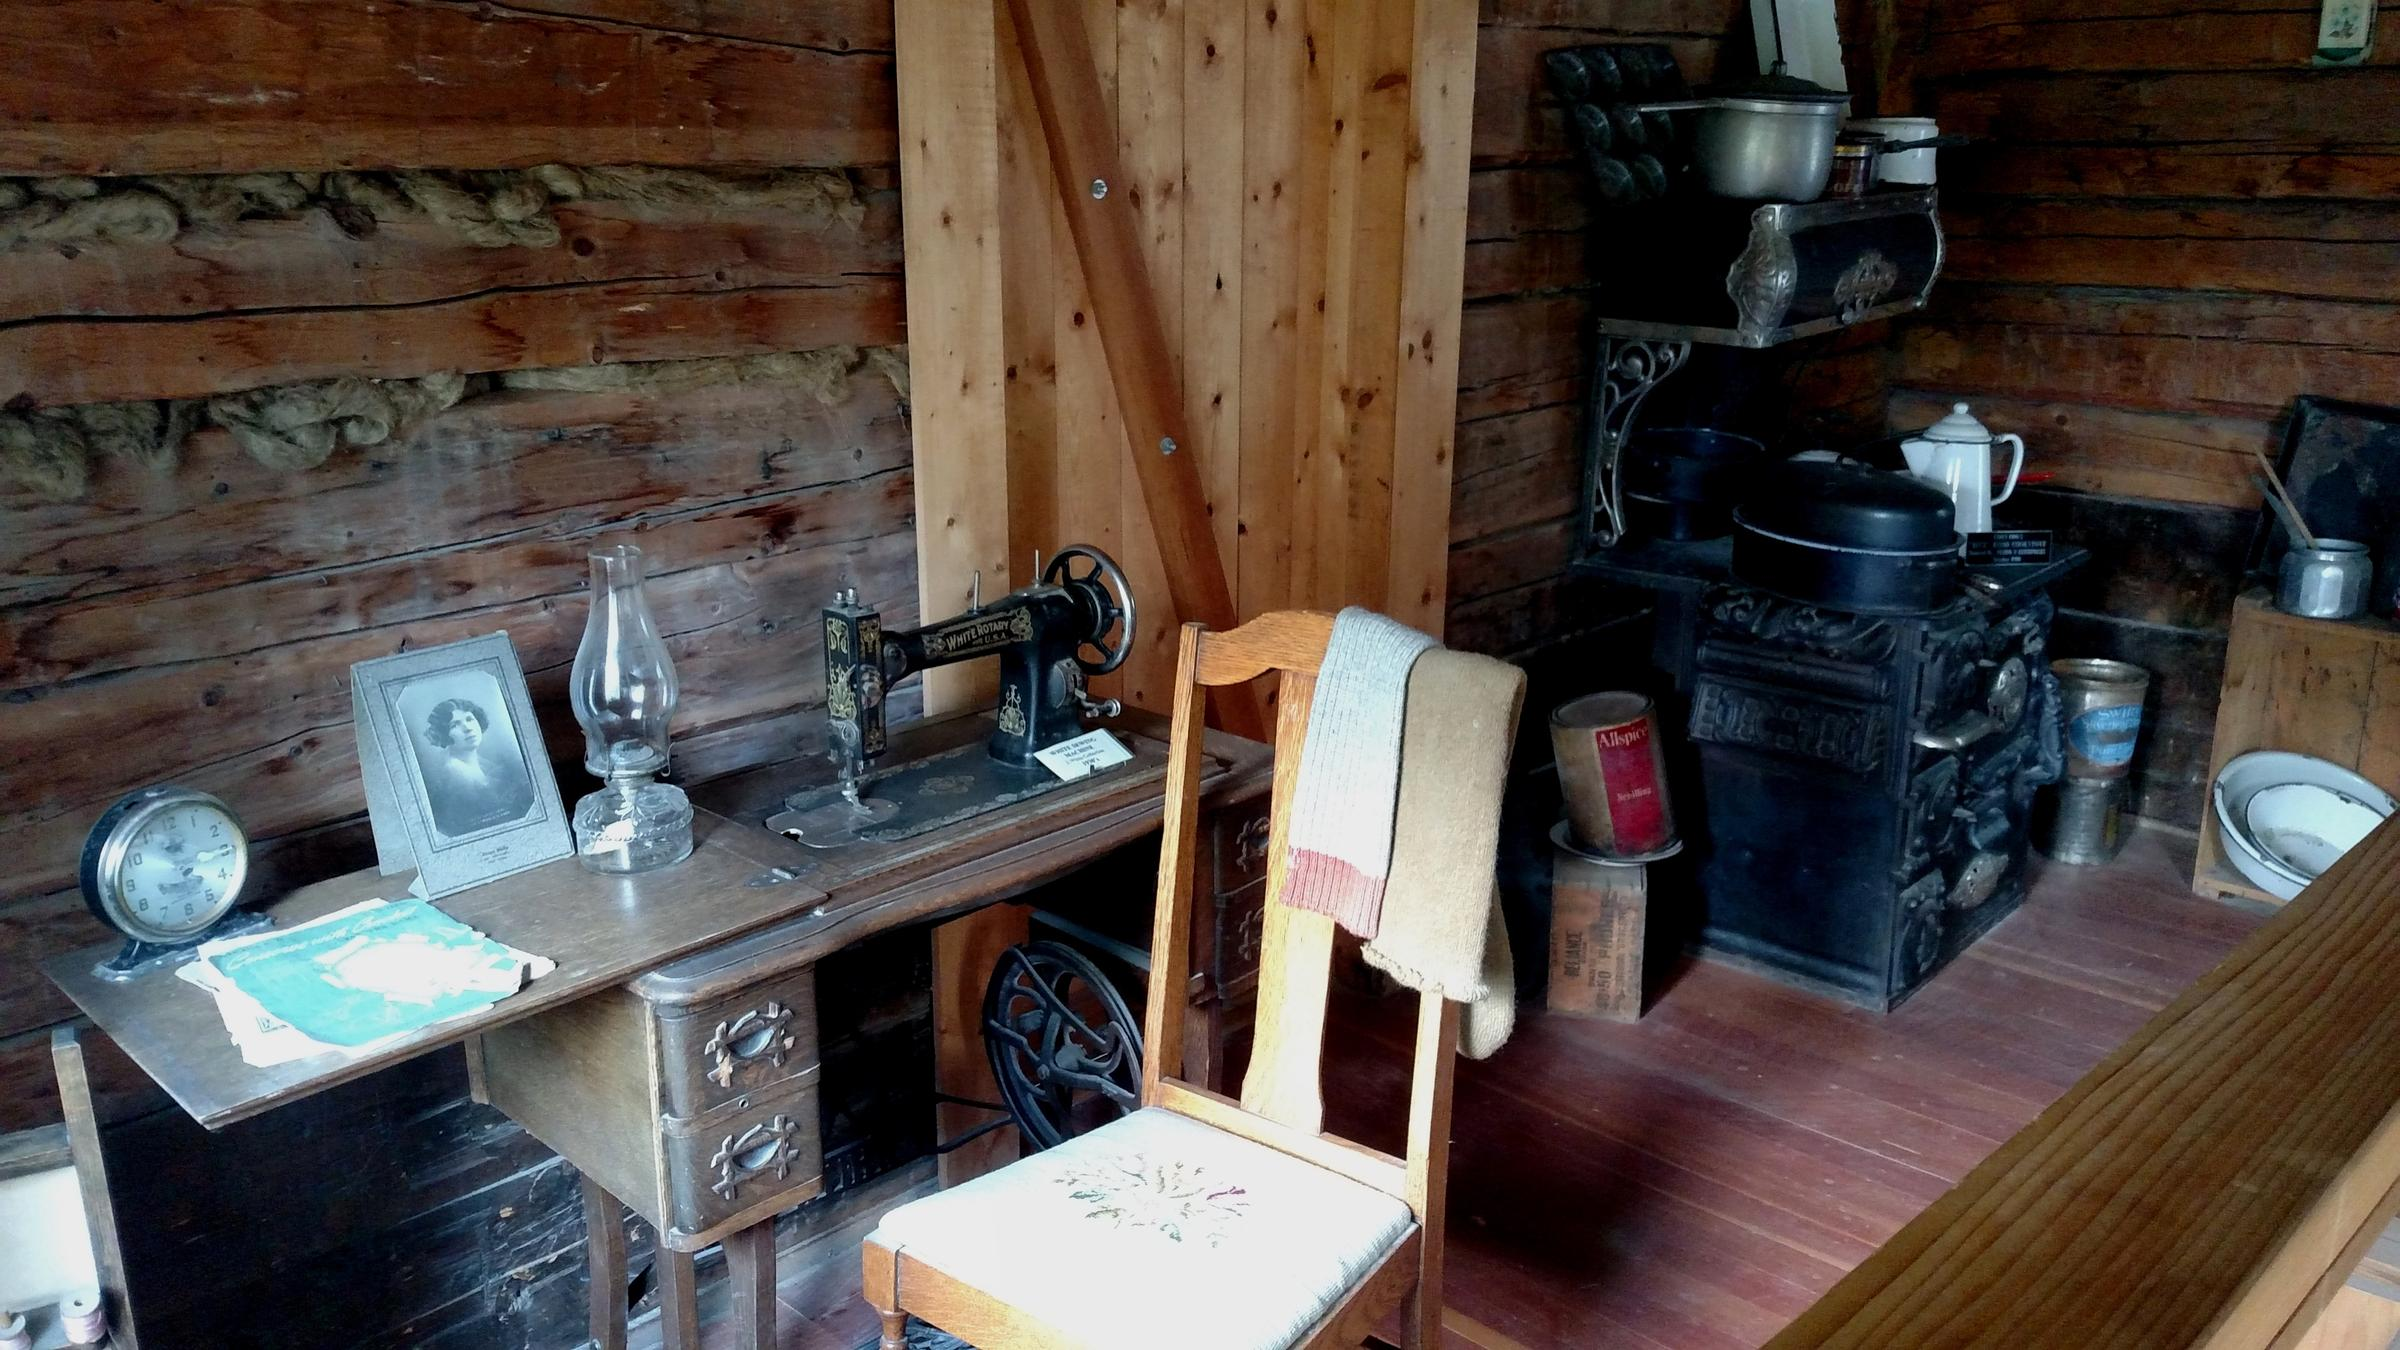 Both of the WAMCATS cabins have been restored and contain carefully curated, historically accurate pieces to accurately depict the working conditions of the signal soldiers assigned to operate the telegraph system. (Photo by Tim Ellis, KUAC - Fairbanks)